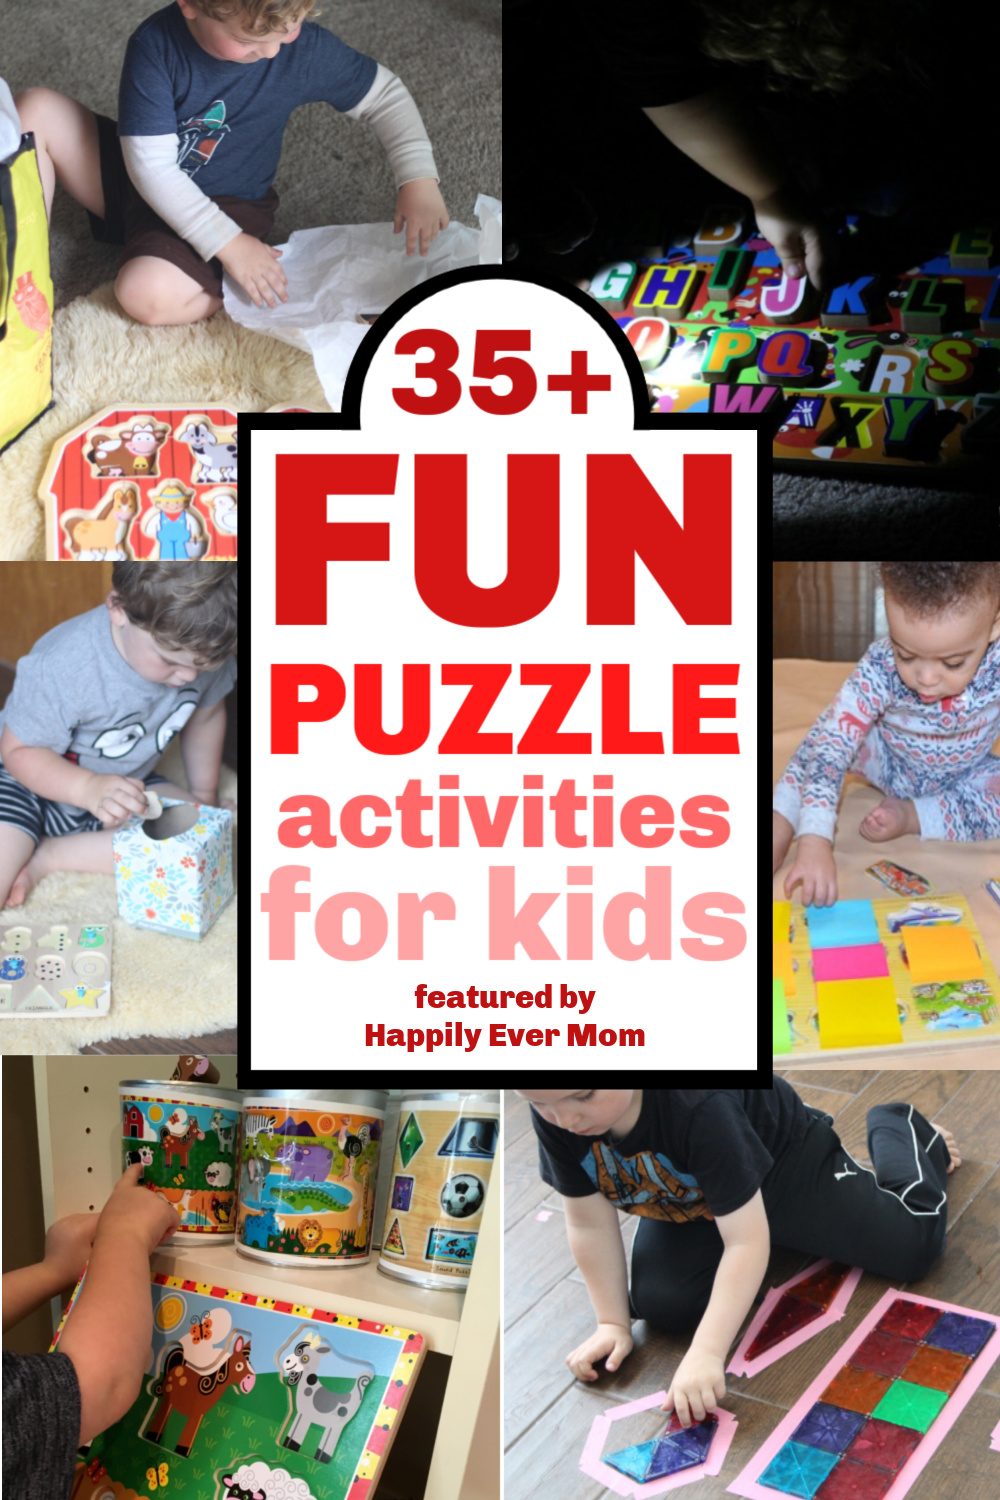 SOO good! Love these puzzle activities for my toddler!